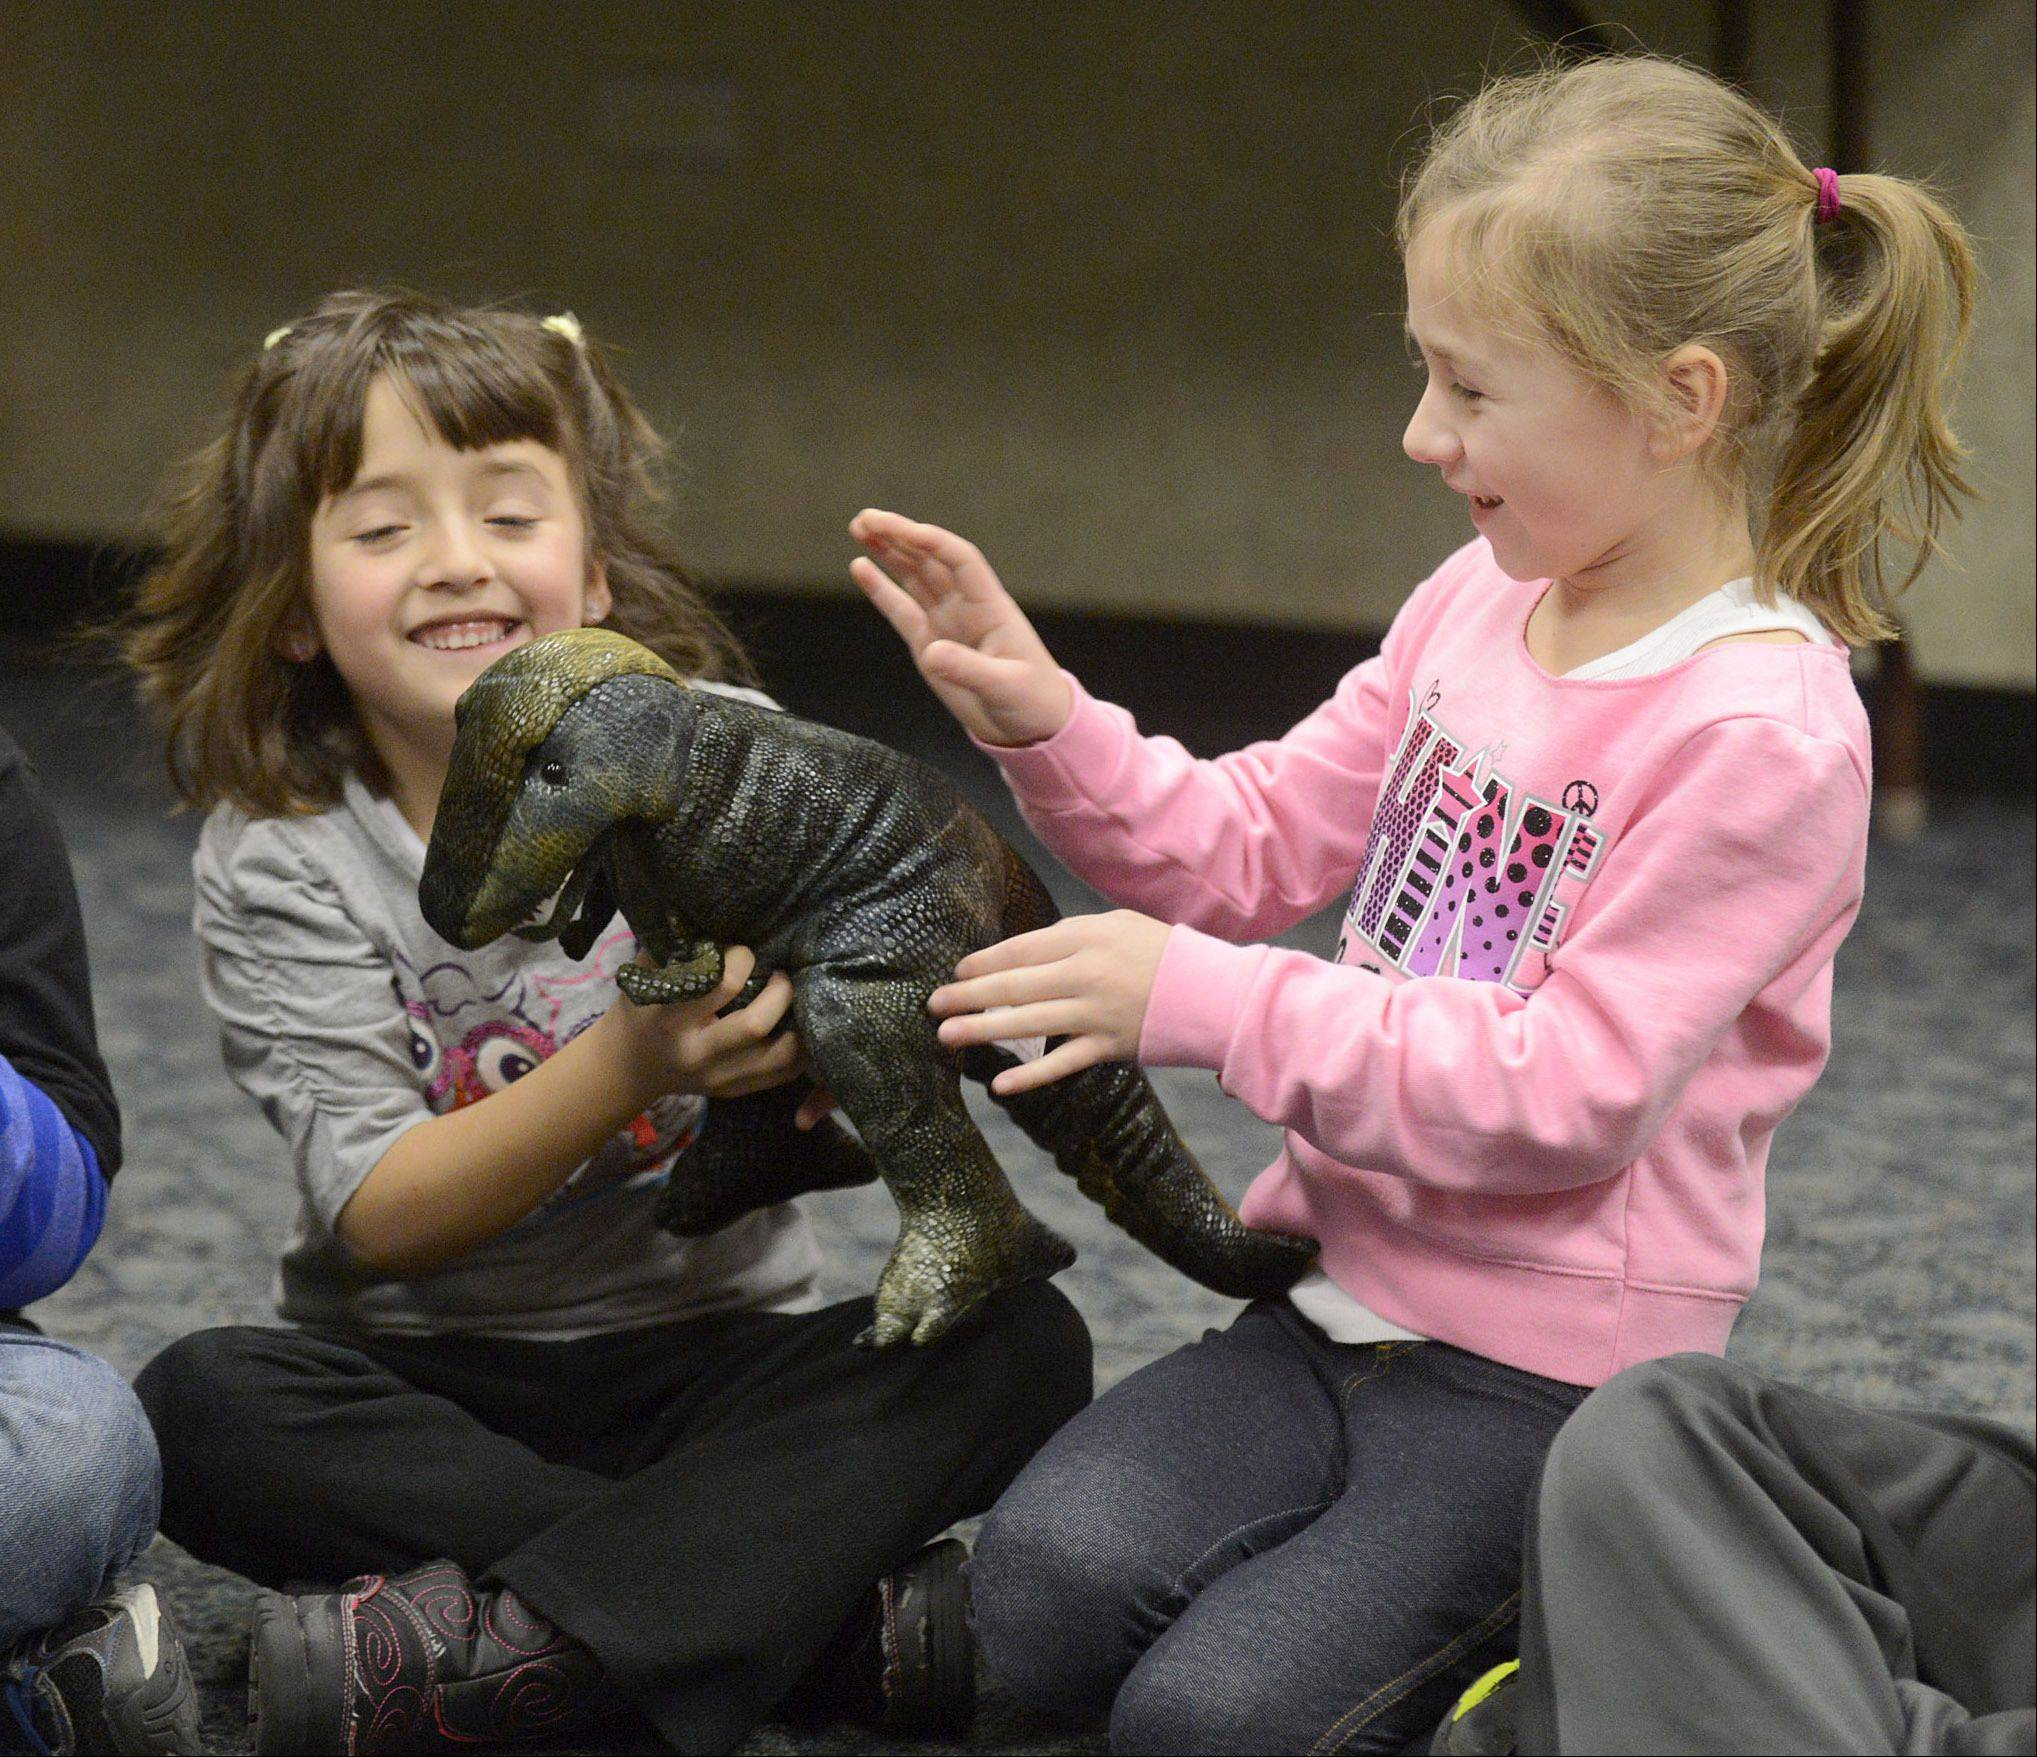 Carla Llorente, 5, is tossed a T-Rex puppet by friend Gabriella Wojtarowicz, 6, during a game of hot dinosaur (like hot potato) during a dinosaur themed Super Saturday program at Algonquin Public Library on Saturday, January 18. Both girls are from Algonquin and attend programs at the library often.